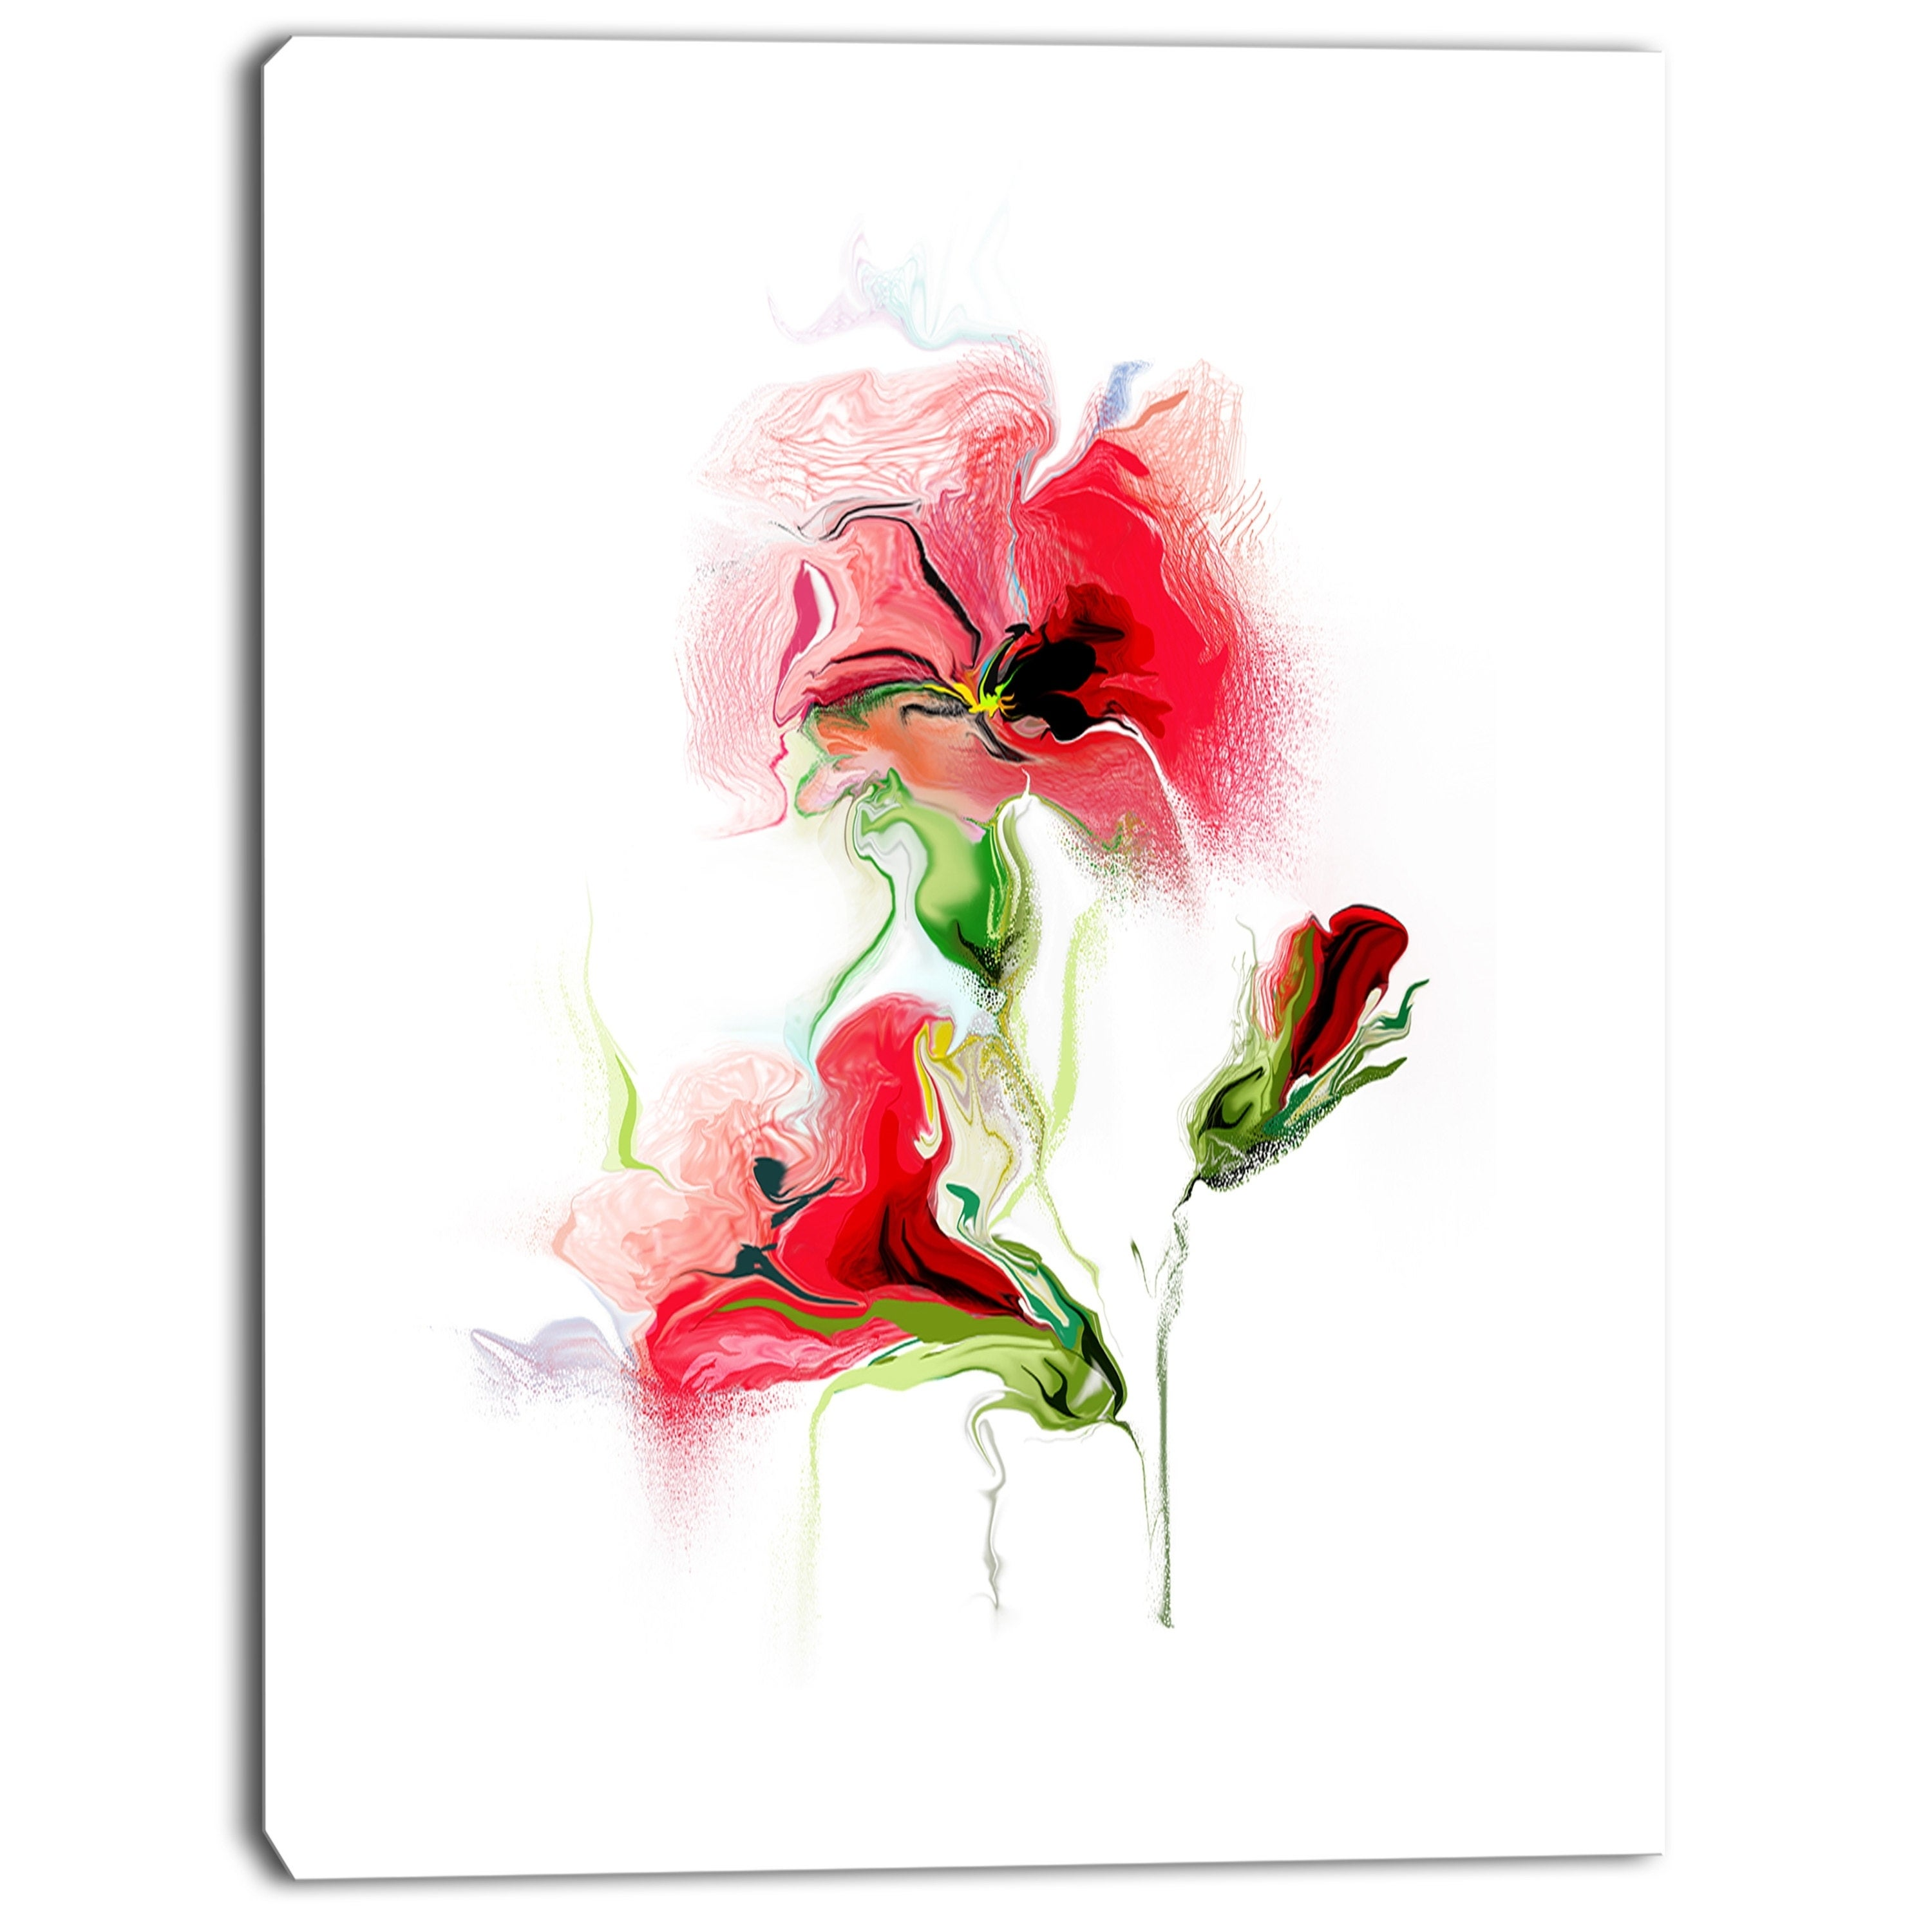 Designart Red Floral Watercolor Illustration Large Animal Canvas Wall Art Print